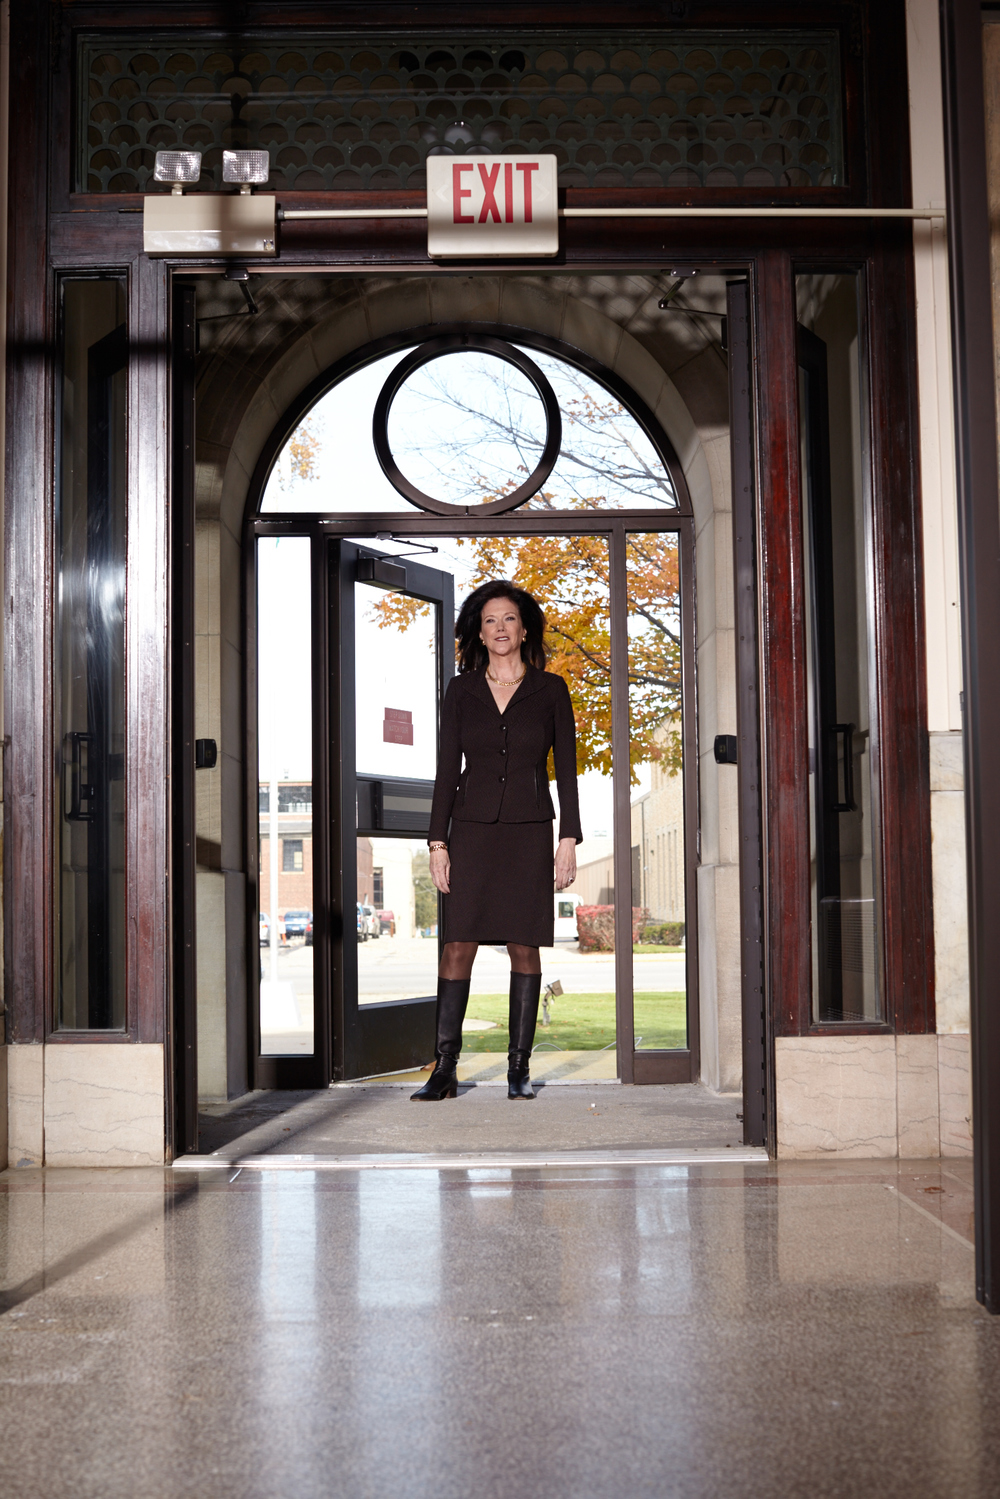 Zellner, inside the Kankakee County Courthouse. Photo by Lisa Predko.